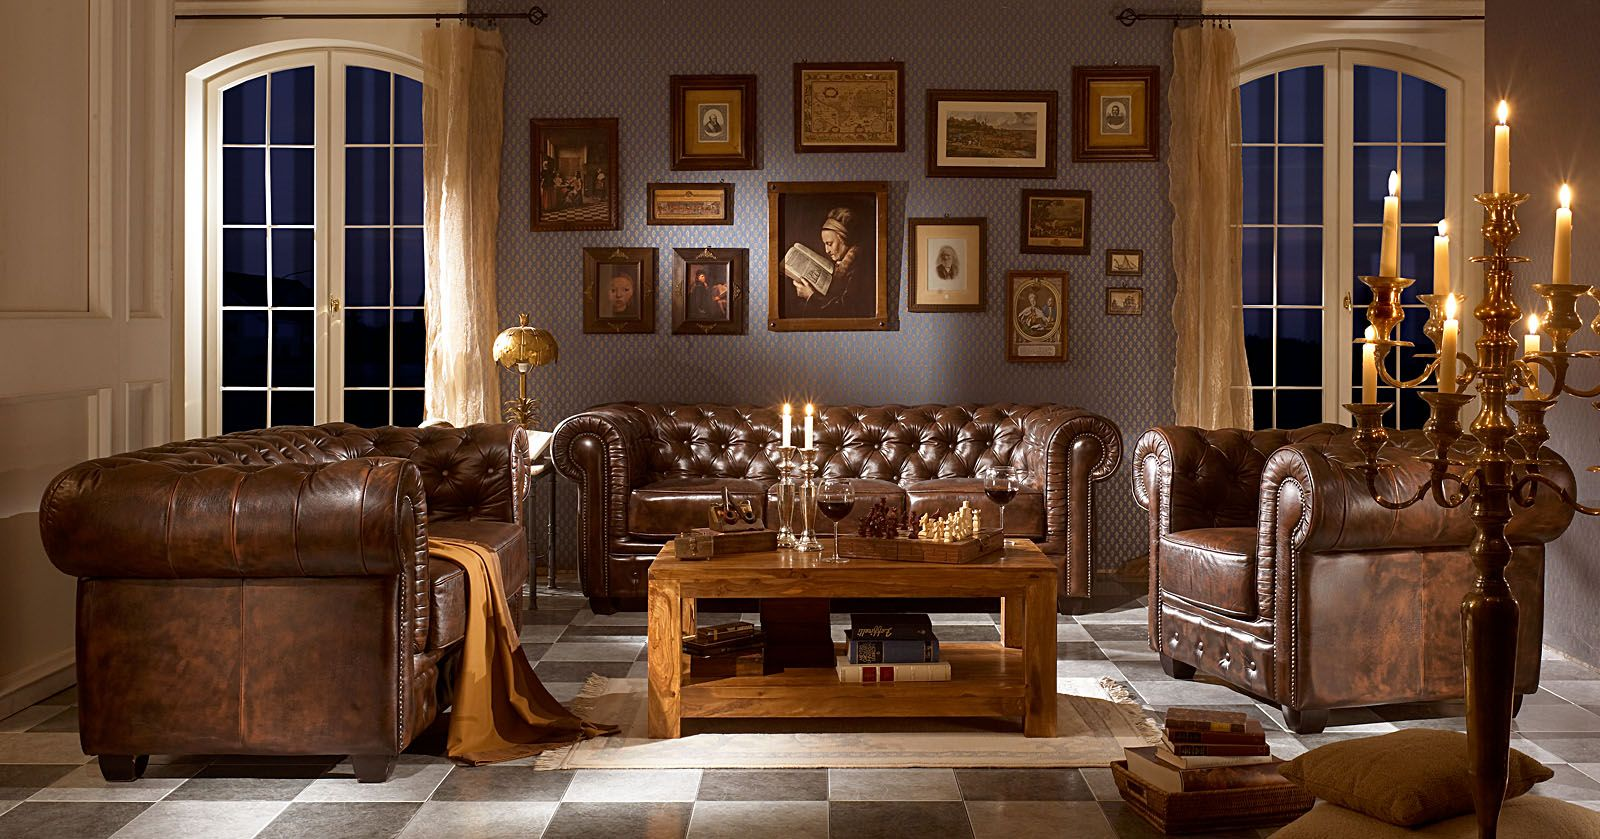 Wohnung Einrichten Online Chesterfield Salon. Cosy And Beautiful. I Want One Like This | Chesterfield Wohnzimmer, Wohnung, Wohnung Einrichten